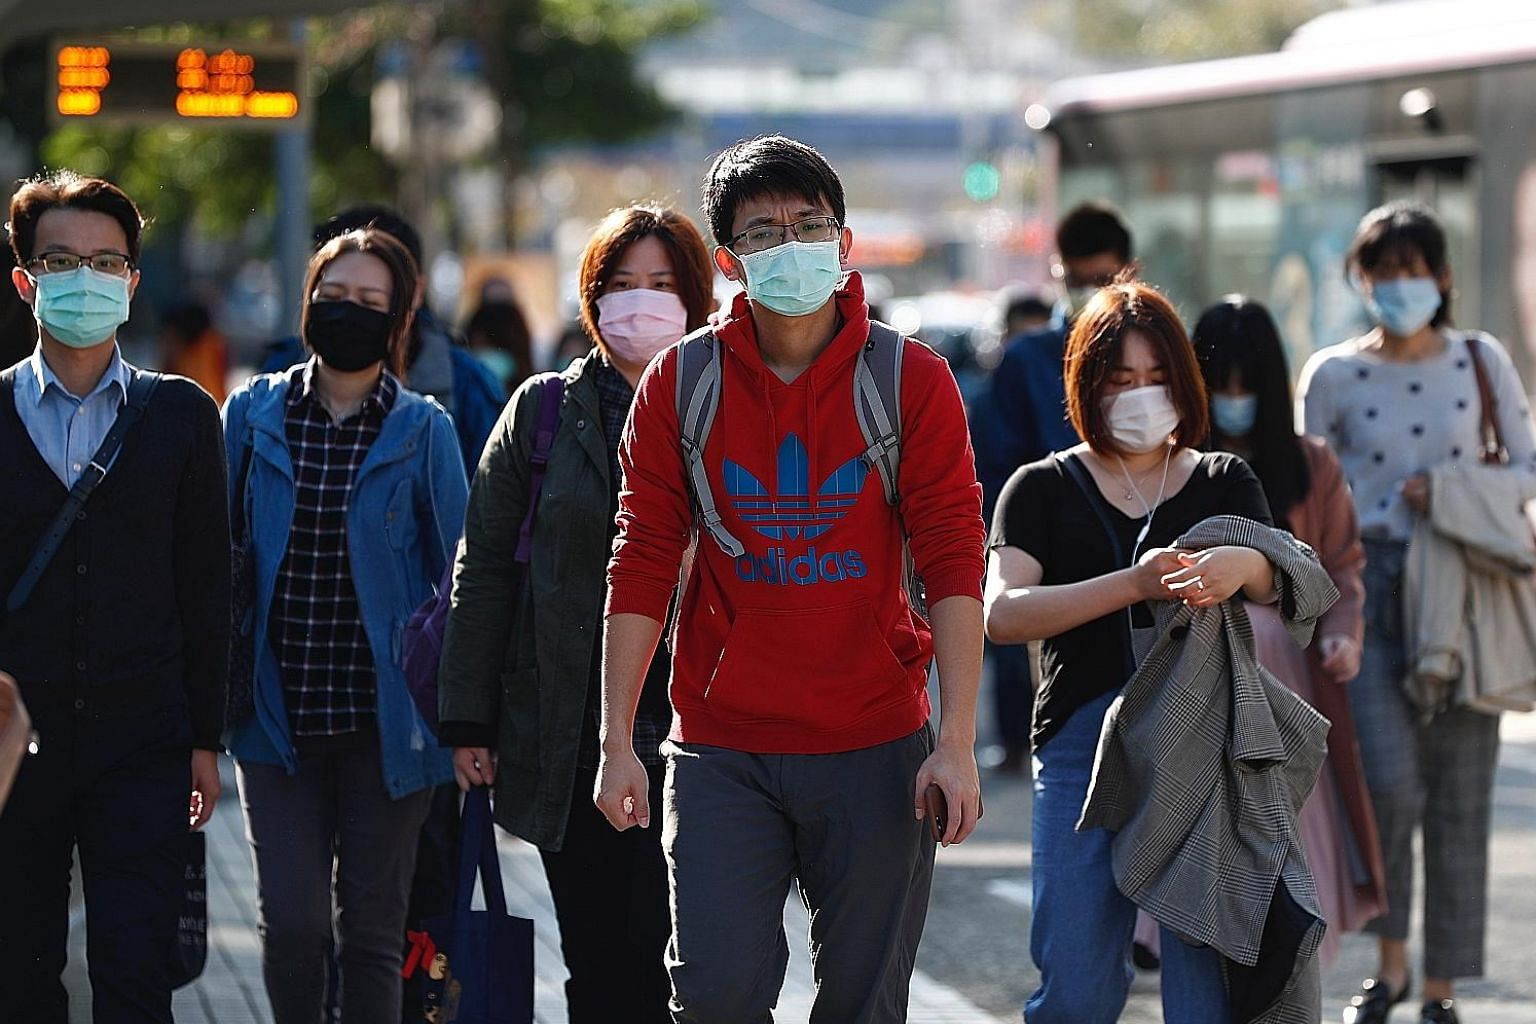 Taiwanese donning face masks in Taipei amid the coronavirus outbreak. Mistrust between Beijing and Taipei has led to acrimony in the handling of the crisis, with several hundred Taiwanese still stranded in outbreak epicentre Wuhan as both sides have